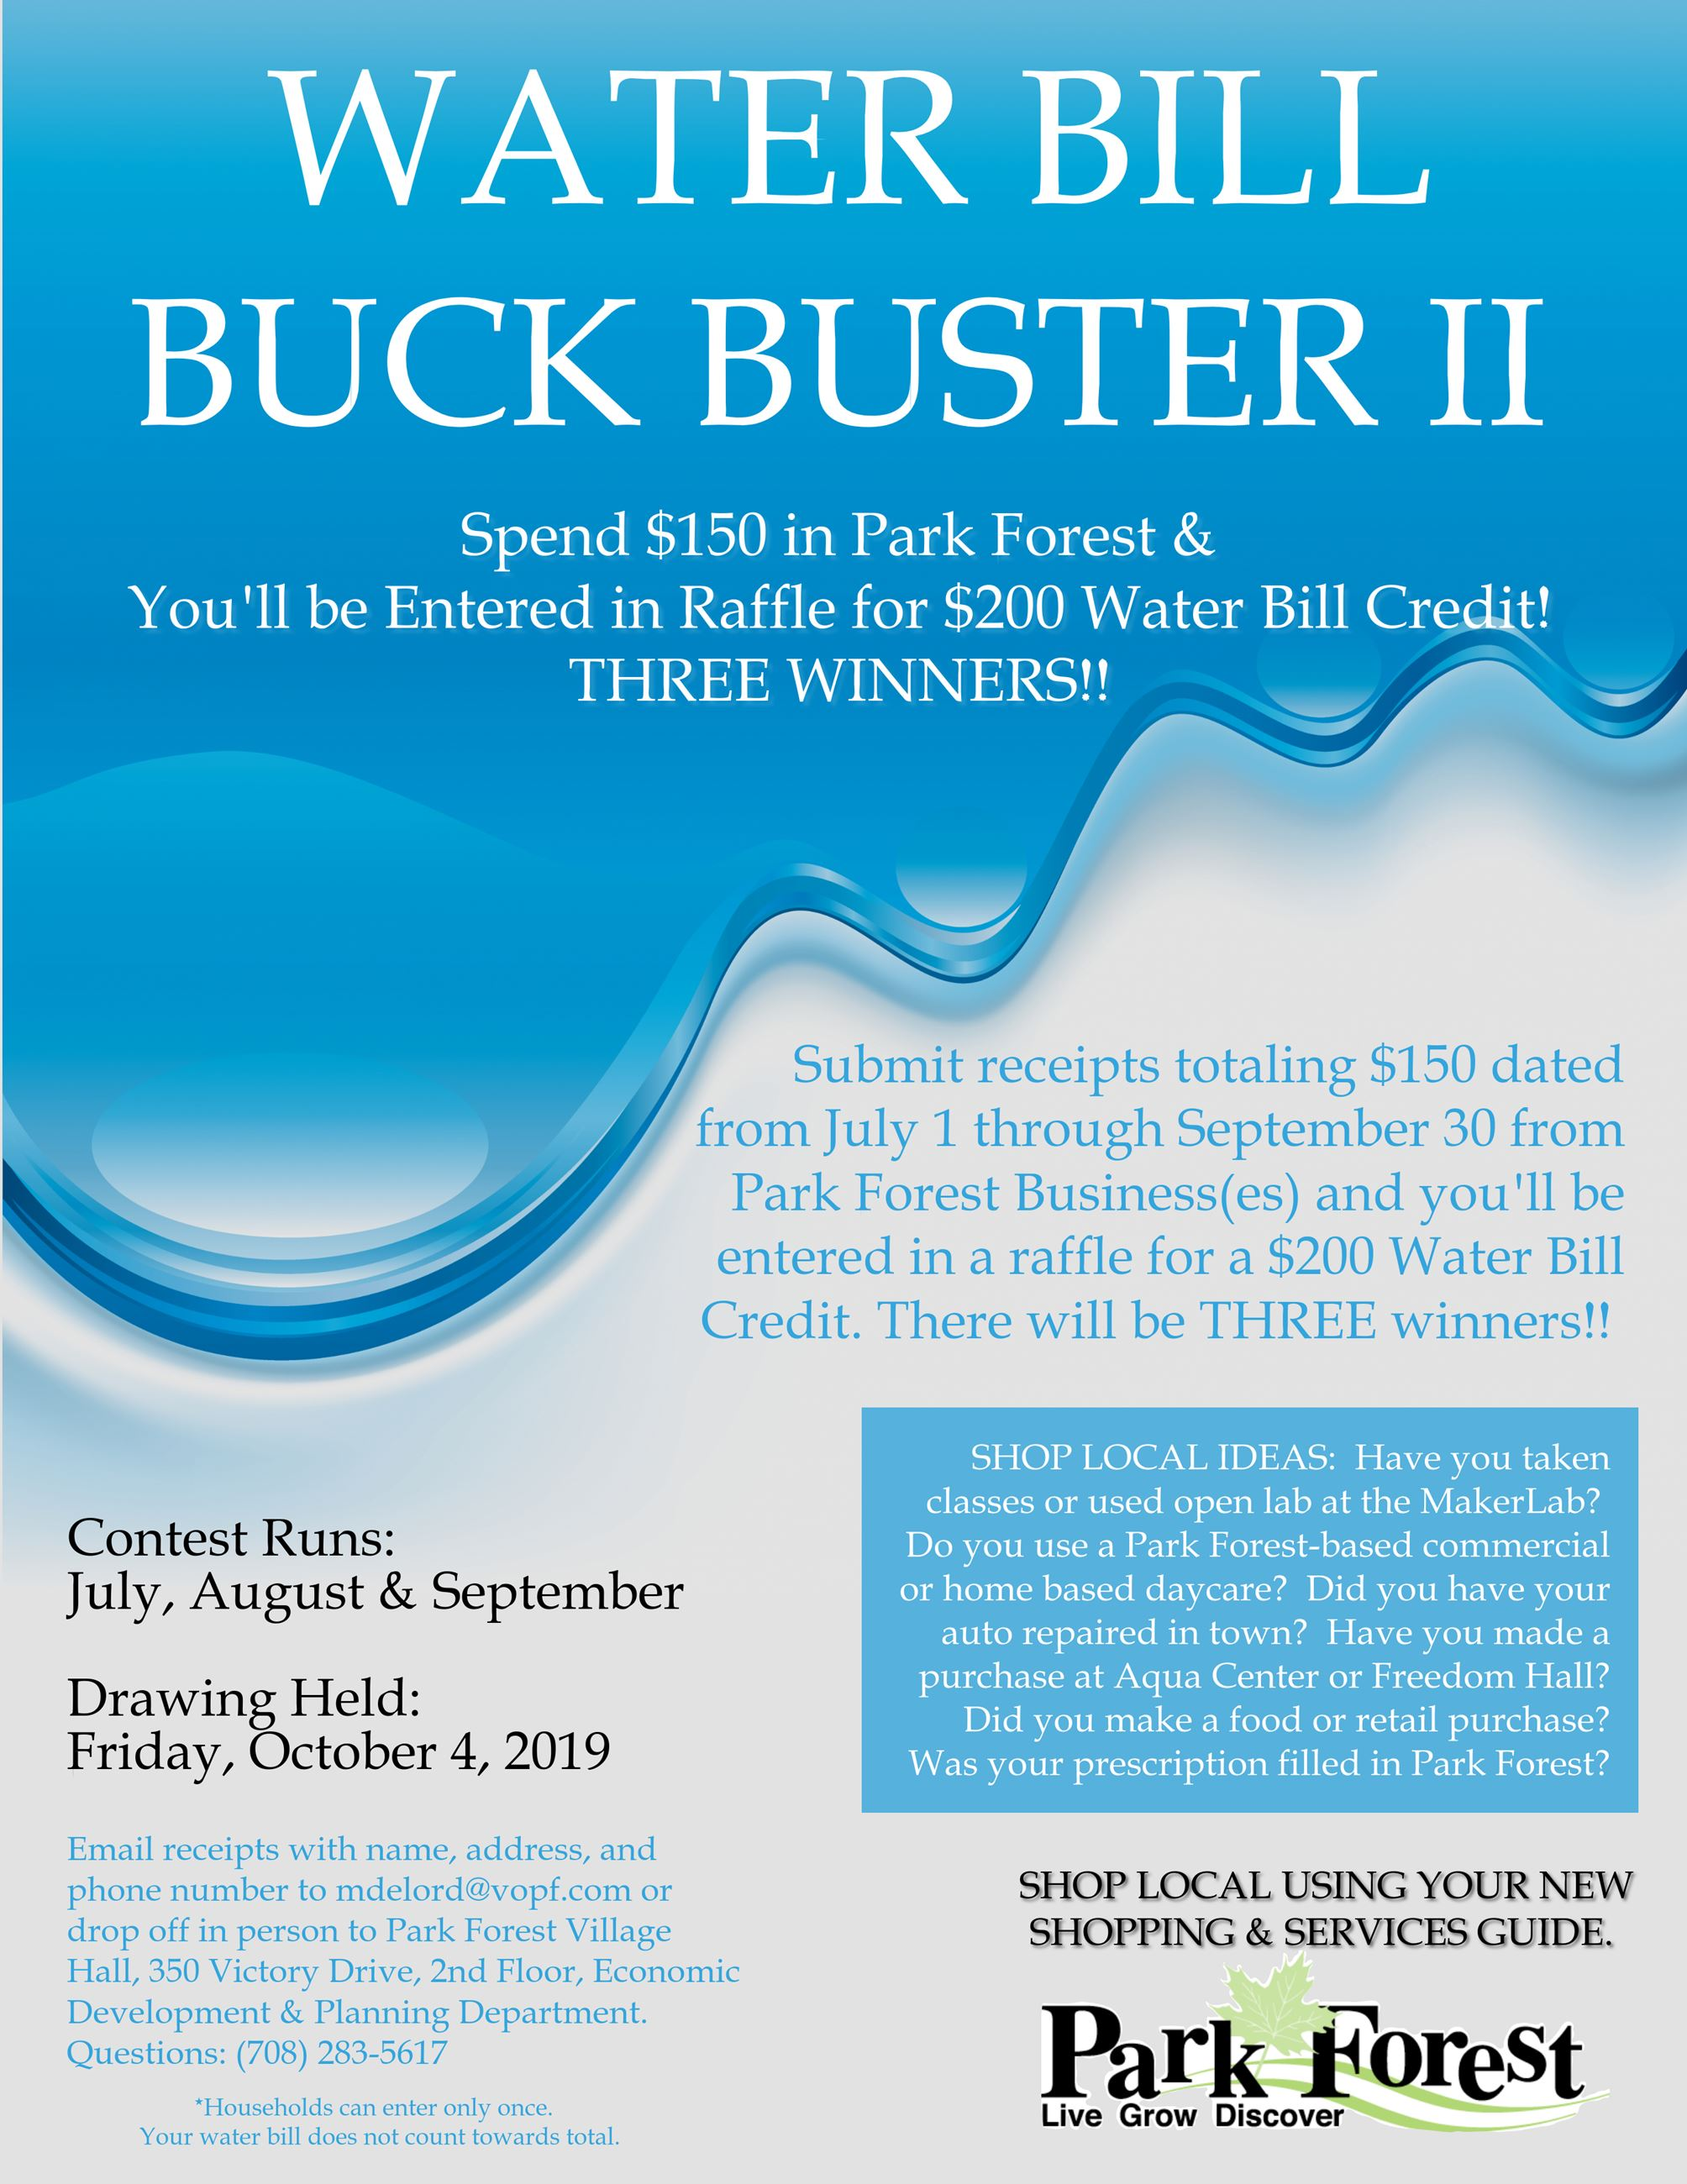 Water Bill Buck Buster II